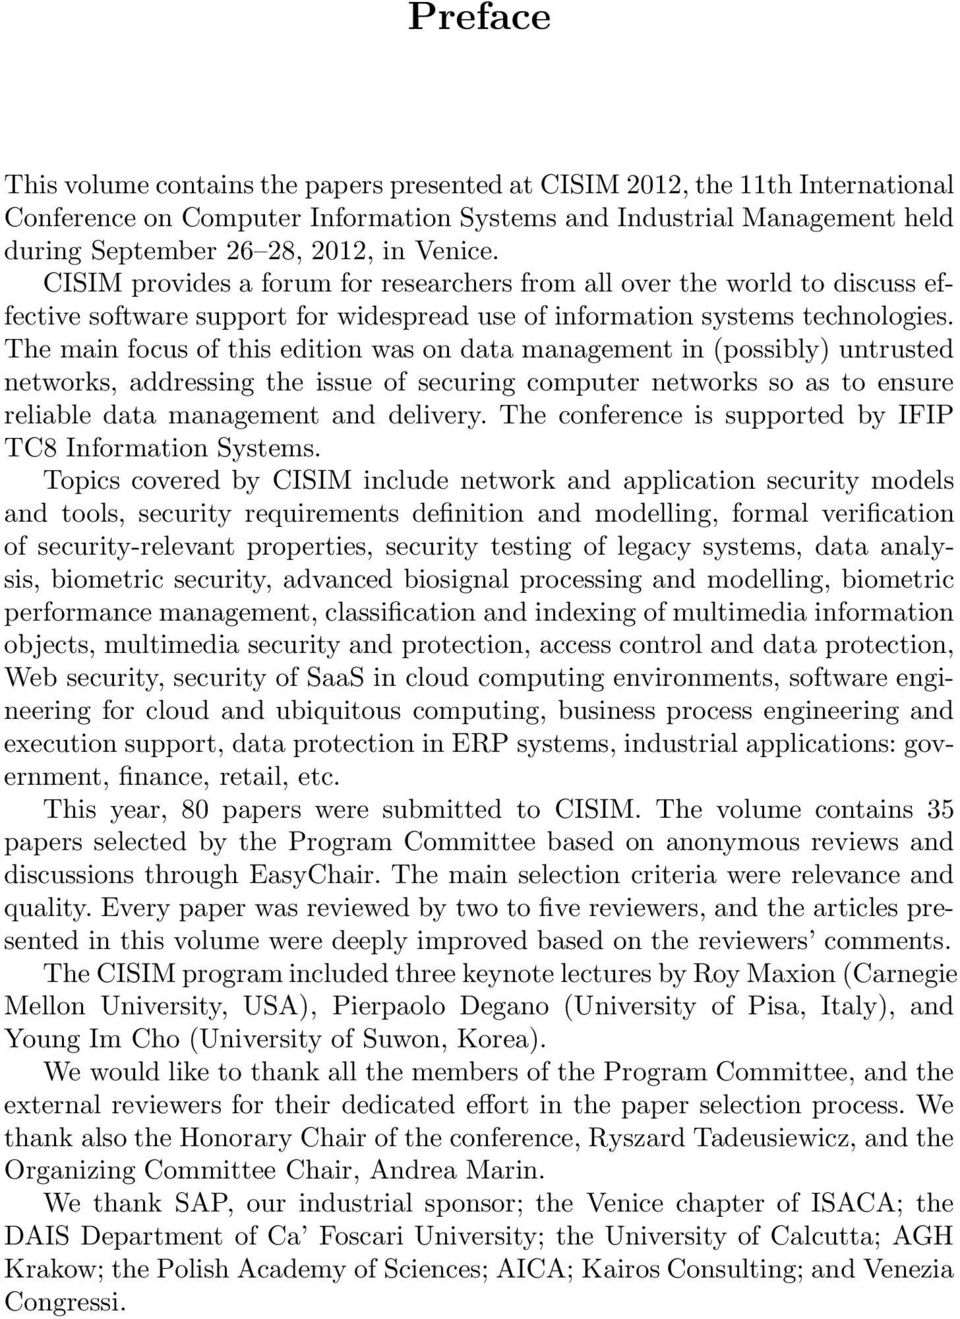 The main focus of this edition was on data management in (possibly) untrusted networks, addressing the issue of securing computer networks so as to ensure reliable data management and delivery.